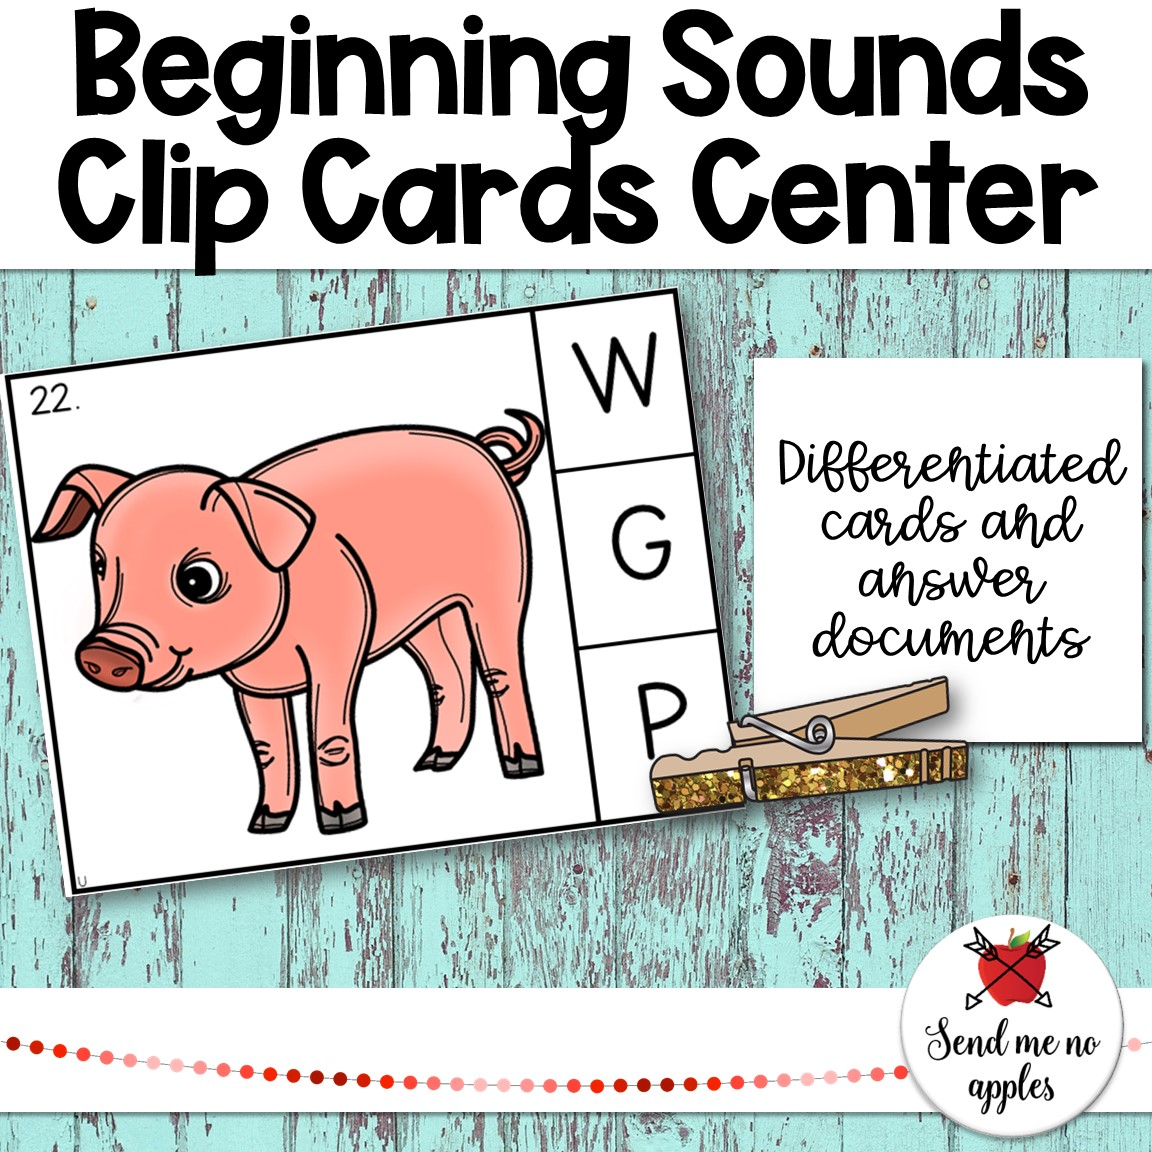 Beginning Sounds Clip Cards Center with Uppercase Letters